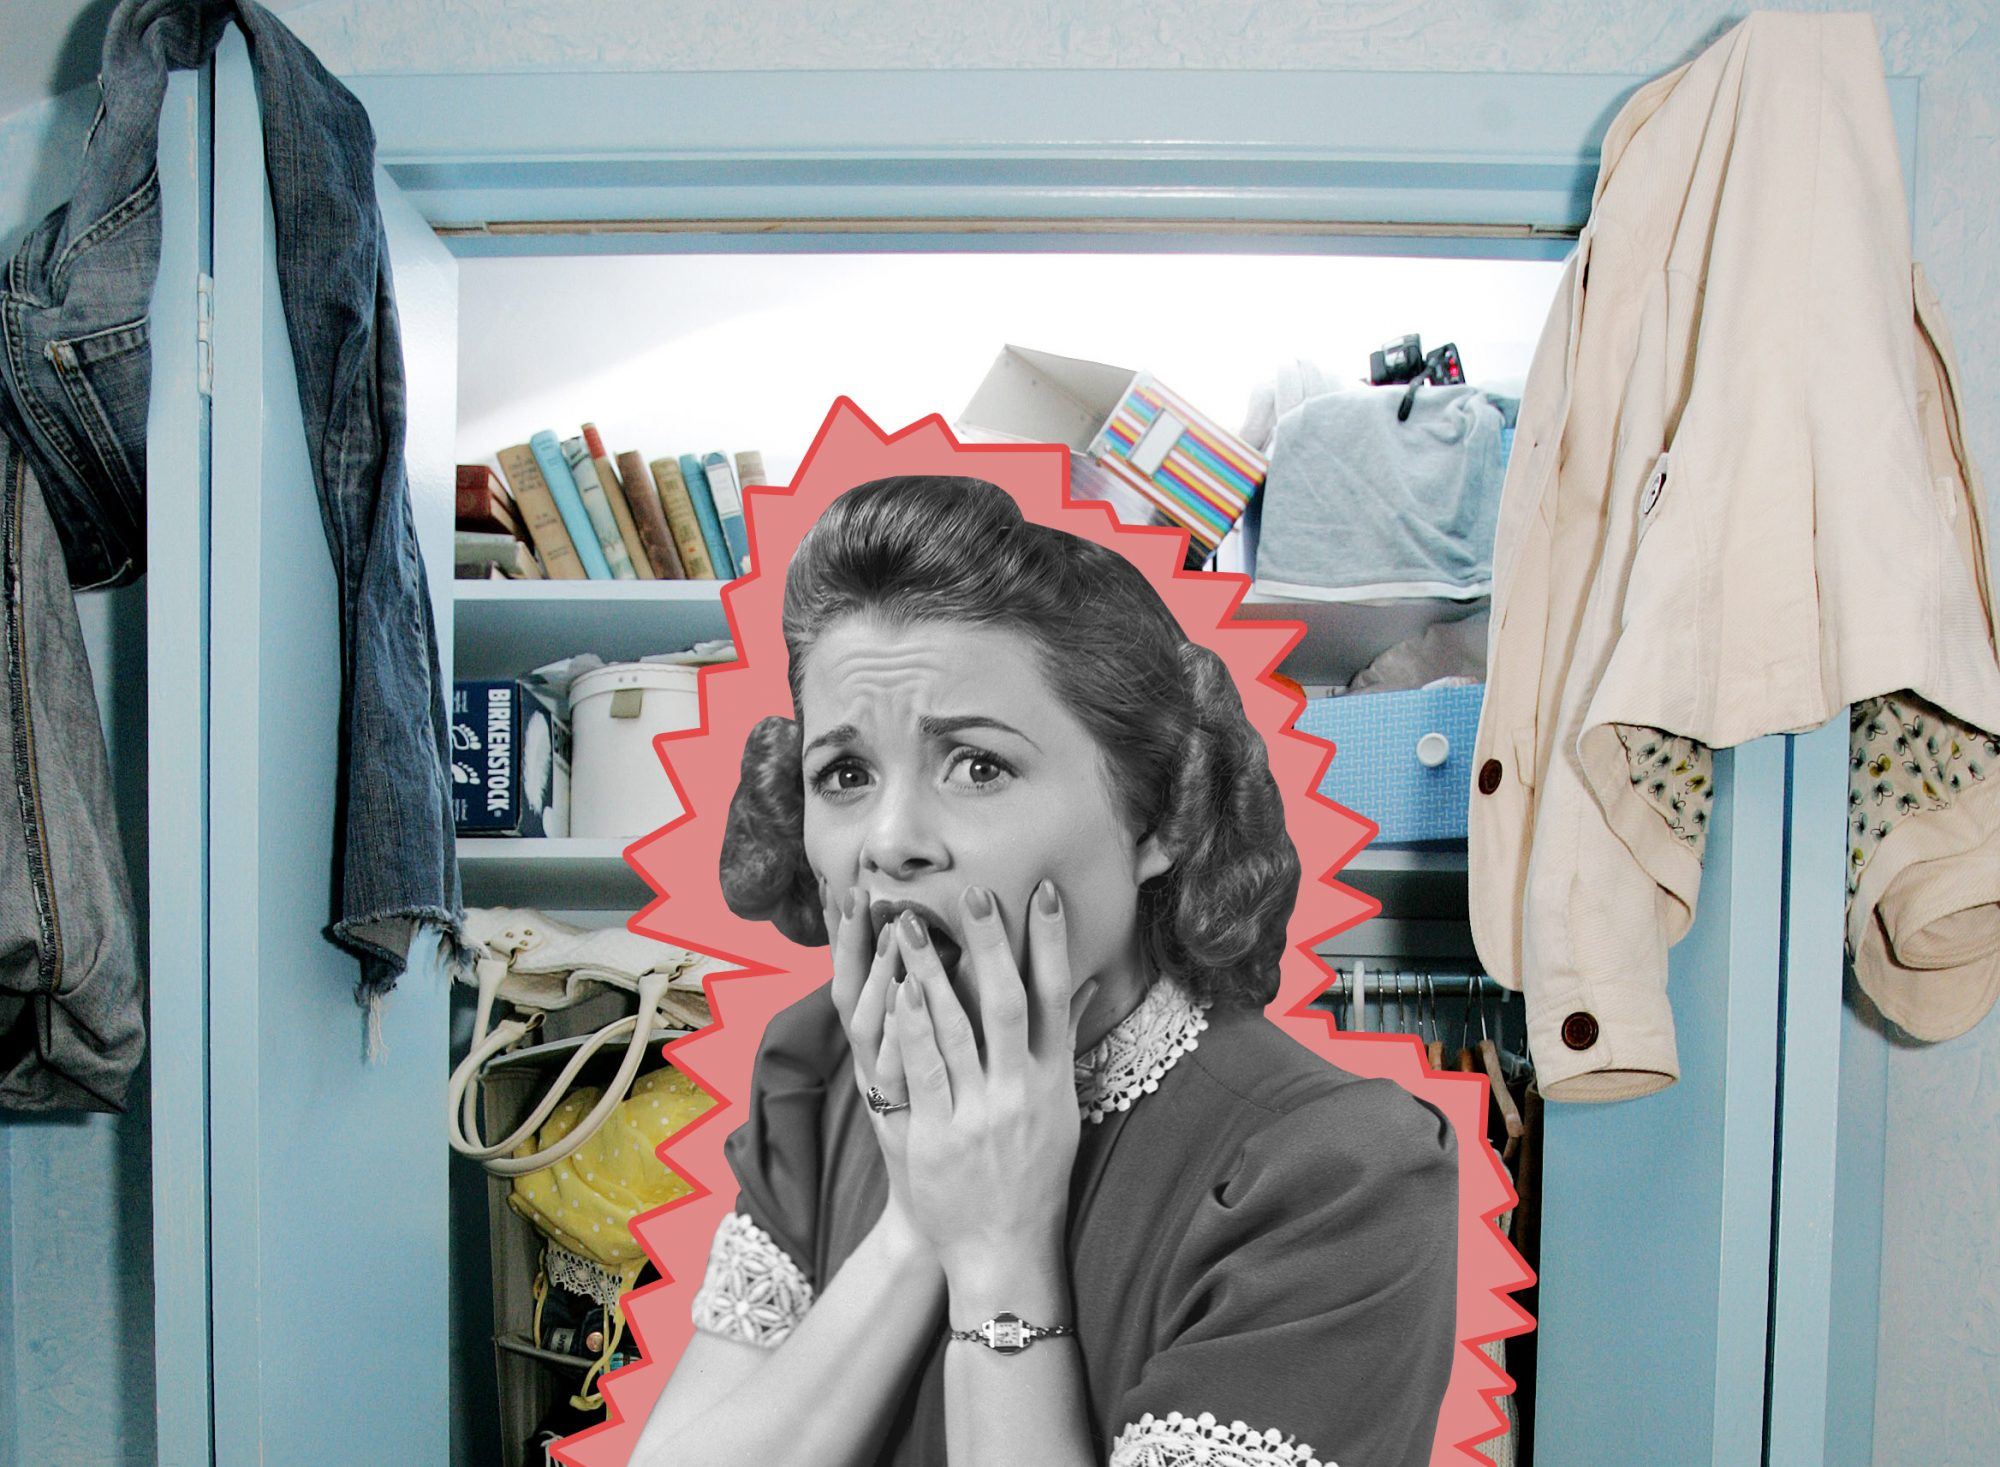 Shocked woman in front of messy closet